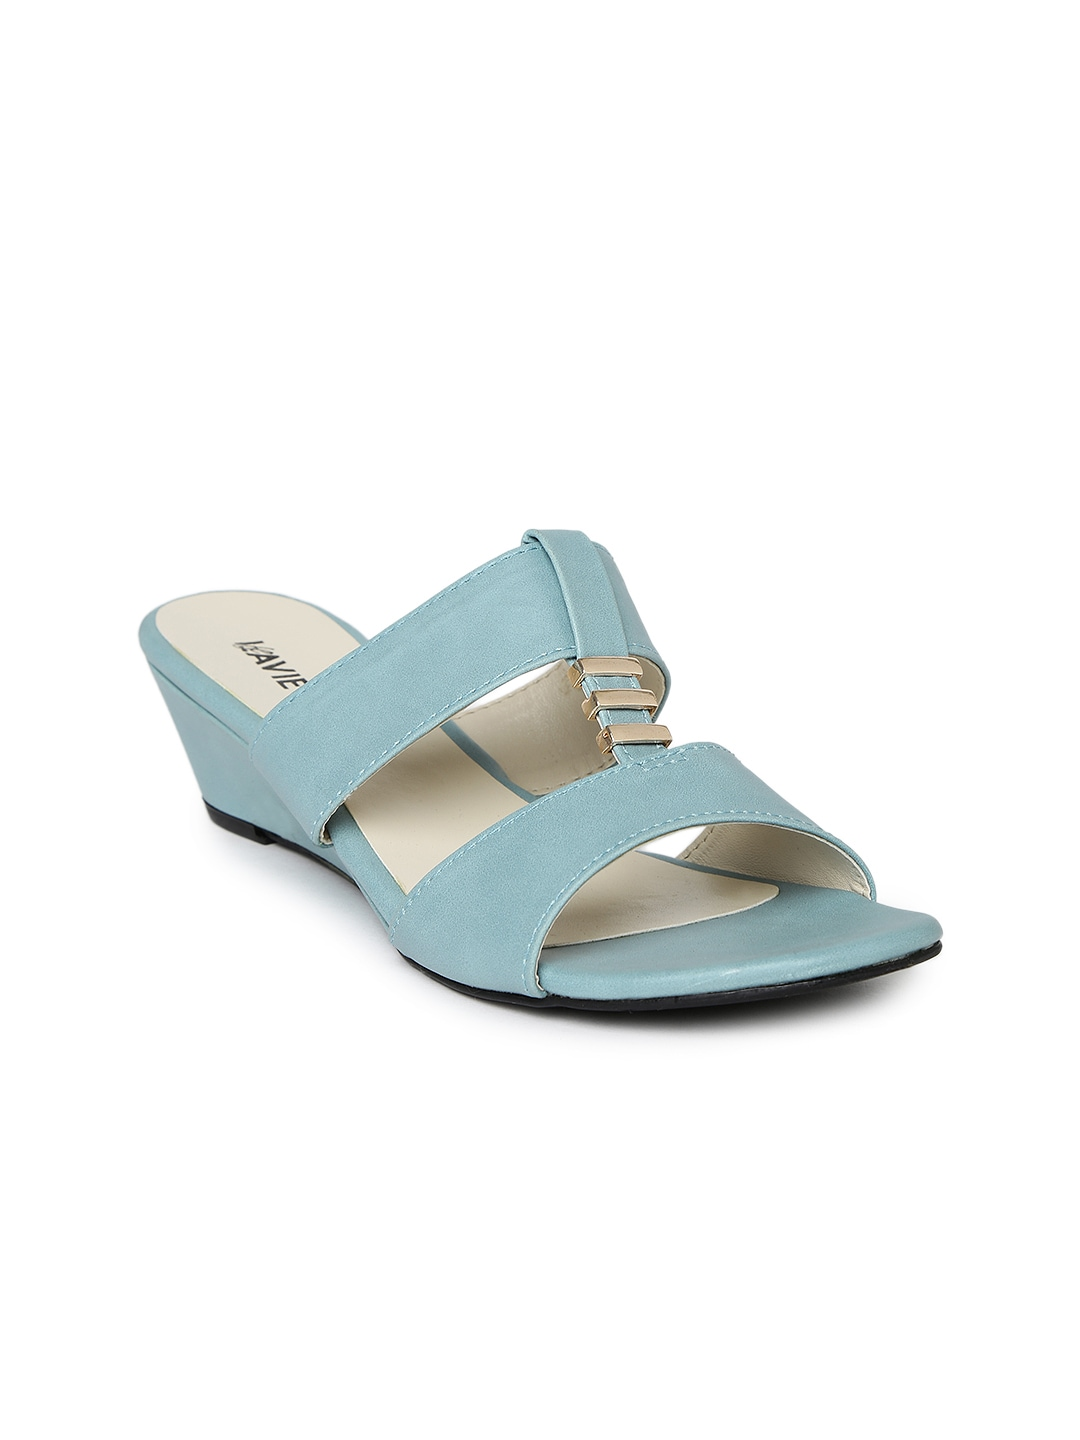 bcf366bea17 Women Shoes - Buy Shoes for Women online in India